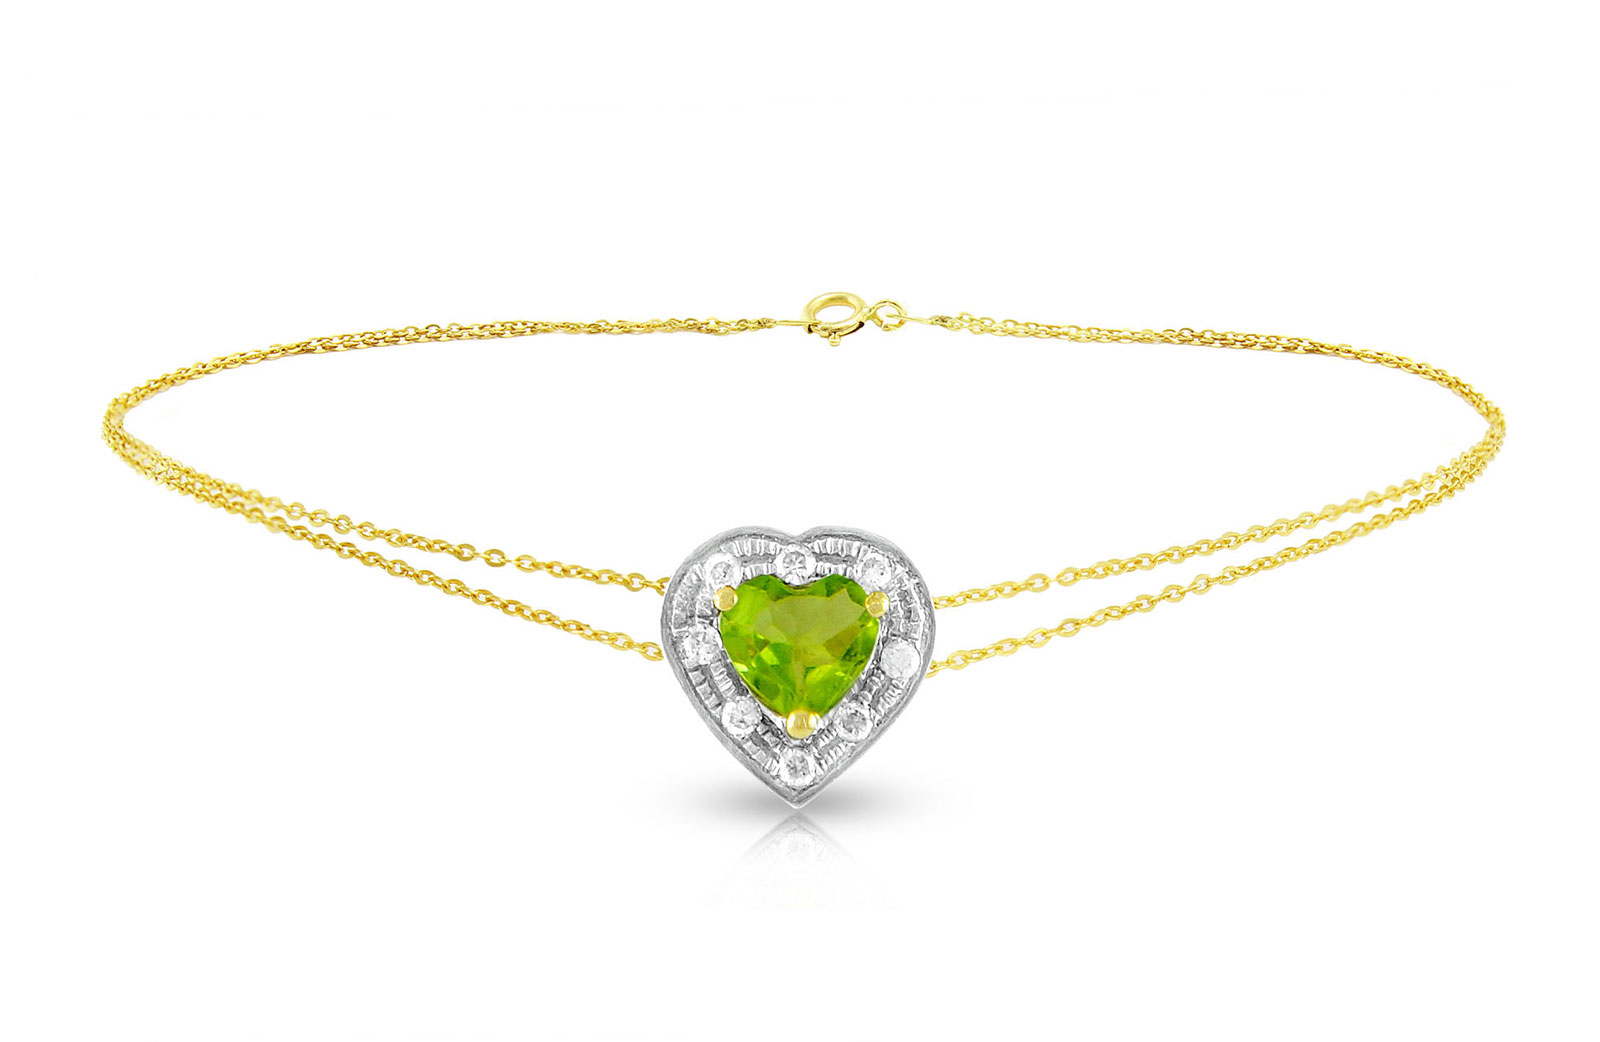 Vera Perla 18K Solid Gold and 0.08Cts Diamonds and 5mm Genuine Peridot Heart Bracelet